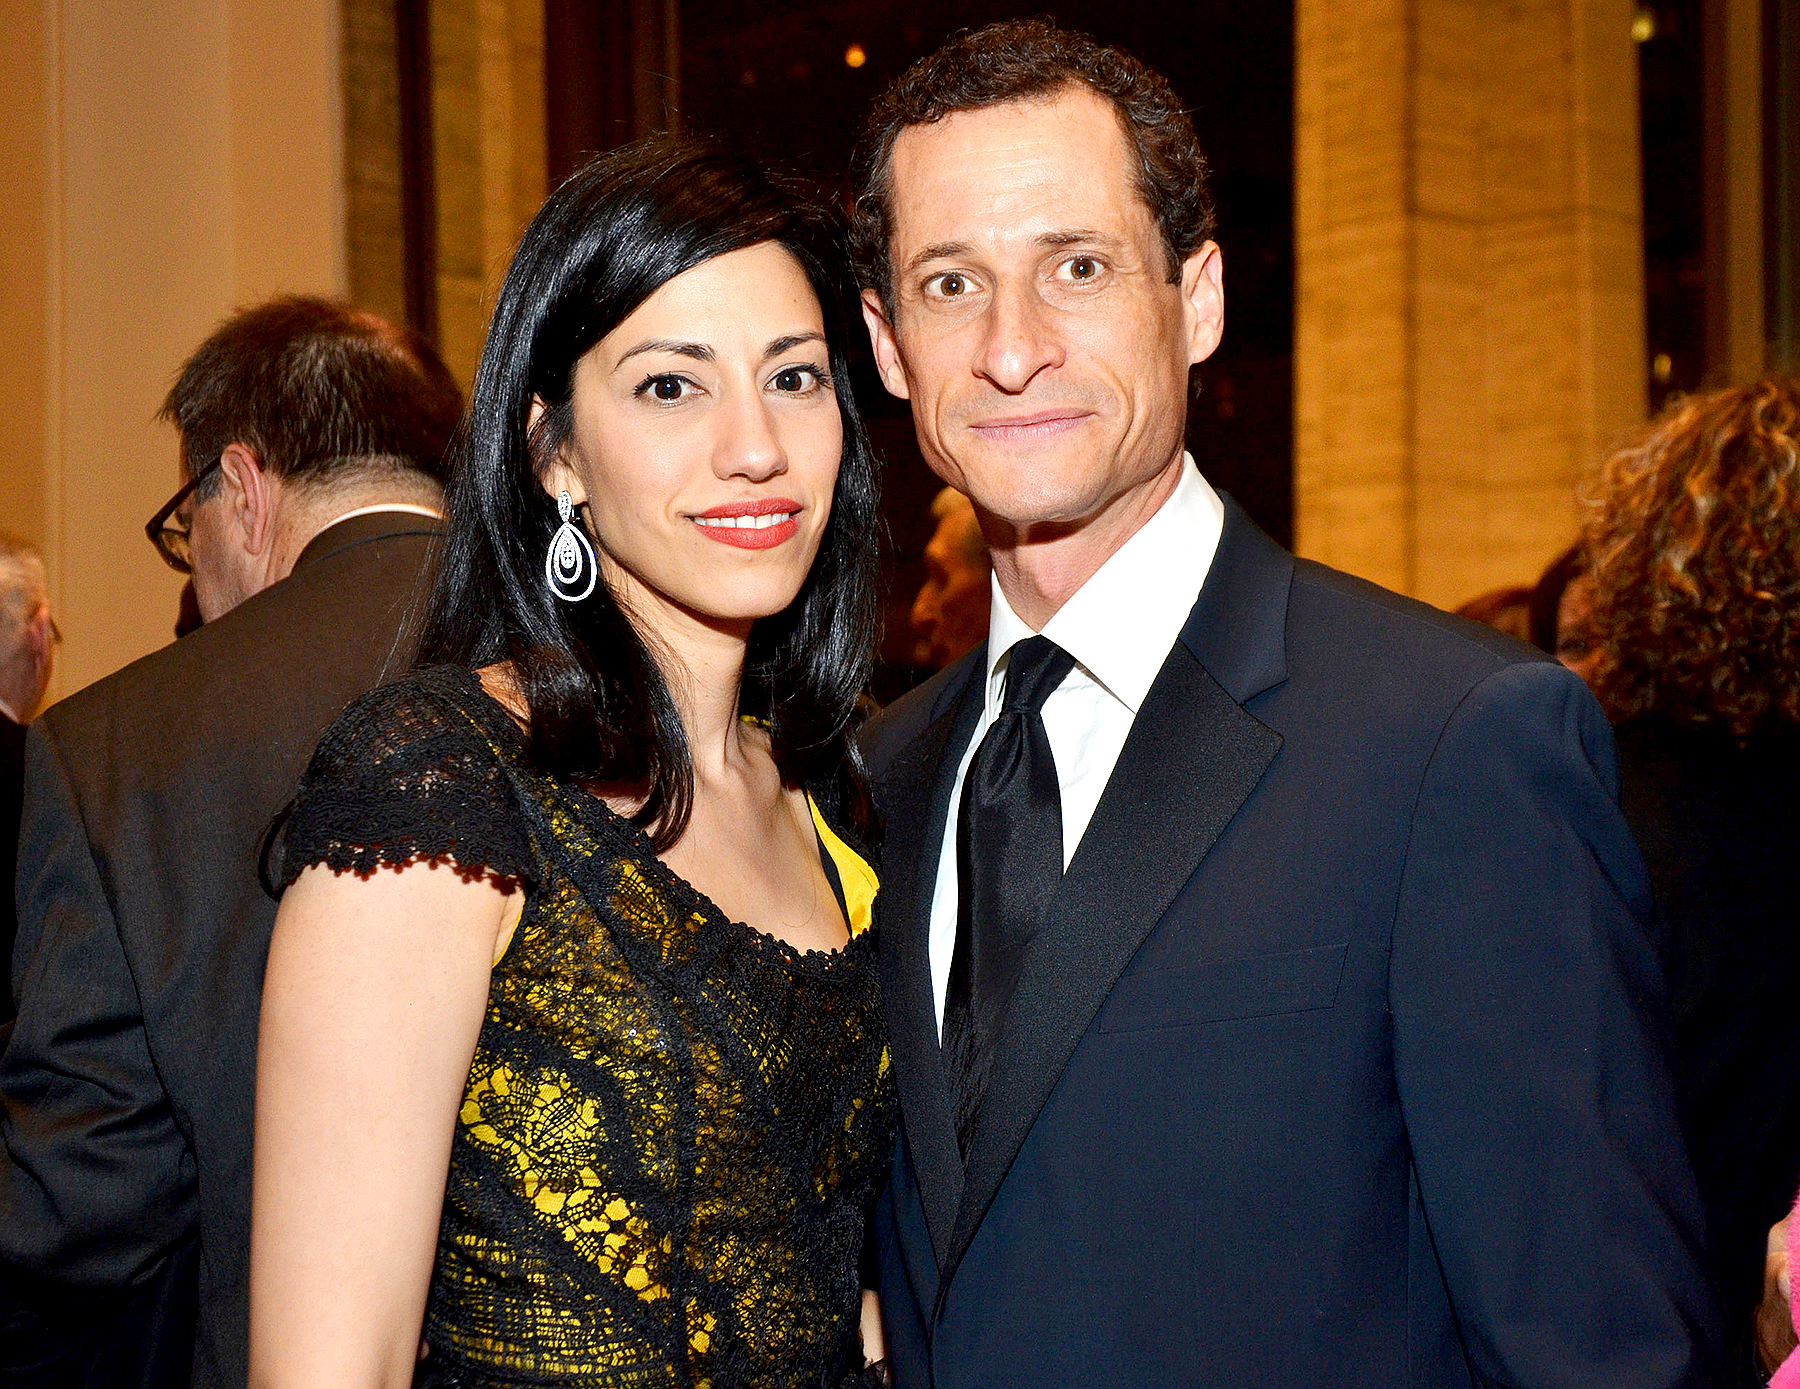 Anthony Weiner And Huma Abedin Cancel Divorce In Court